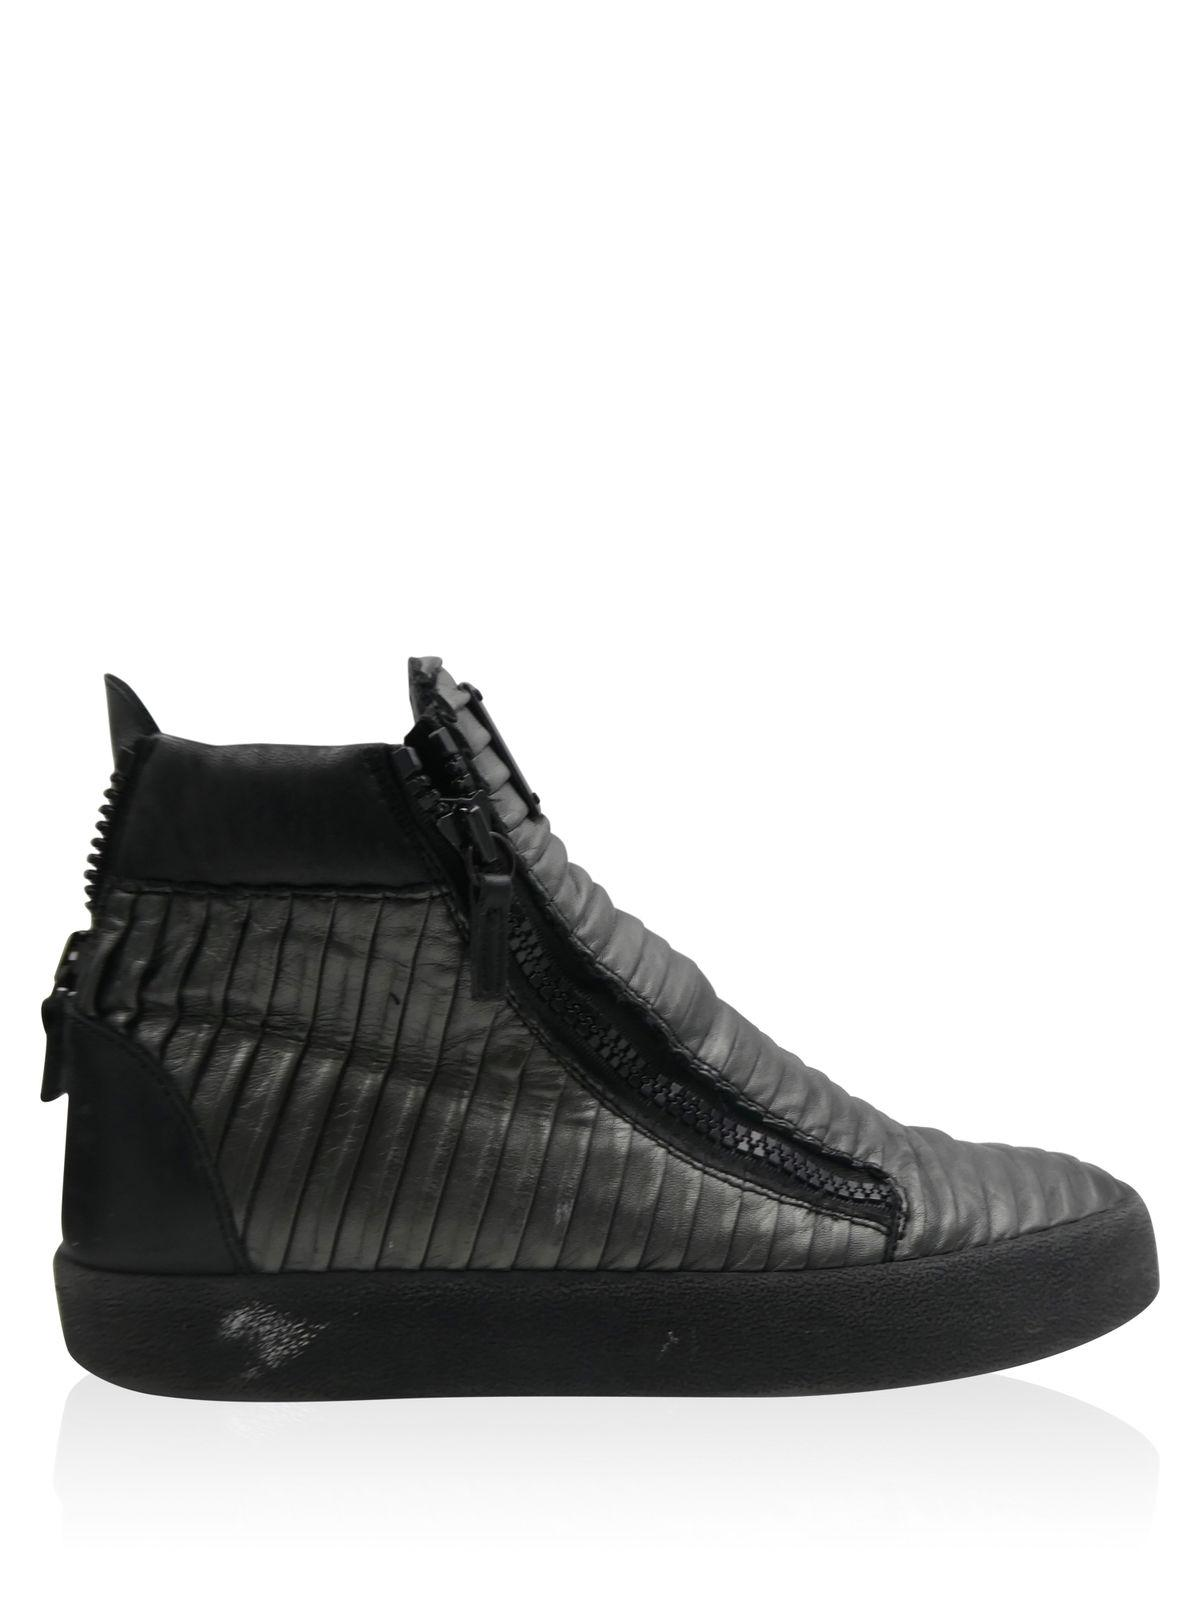 Giuseppe Zanotti Leather High-To... clearance low price fee shipping discount shop offer 2014 cheap online pictures online ZTrYG94QF